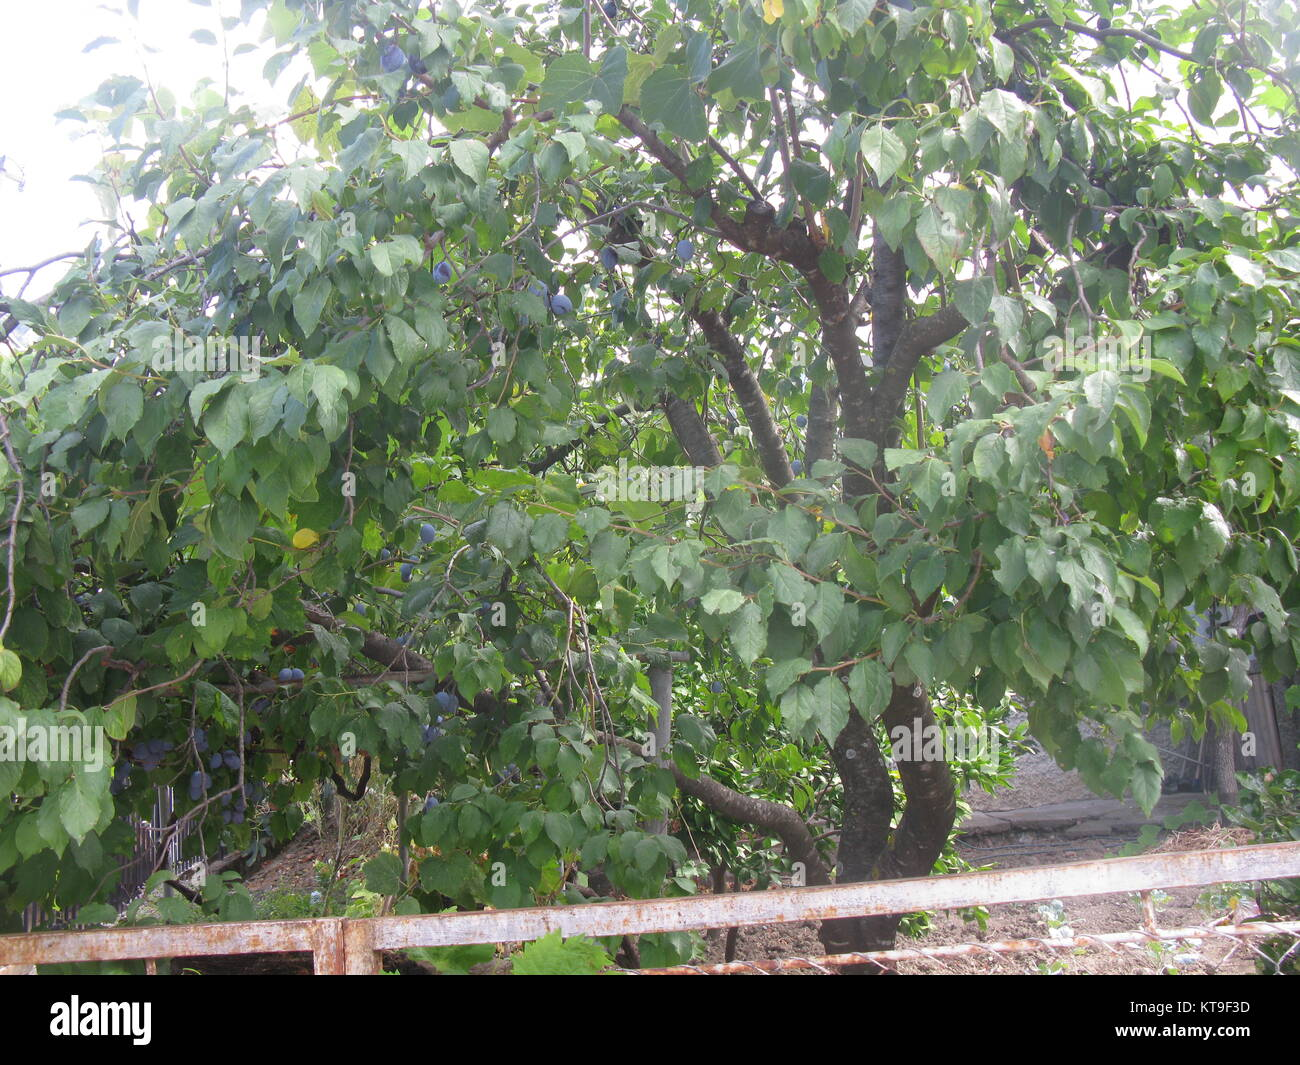 Ripeing drains on the drain tree in the fruit orchard - Stock Image